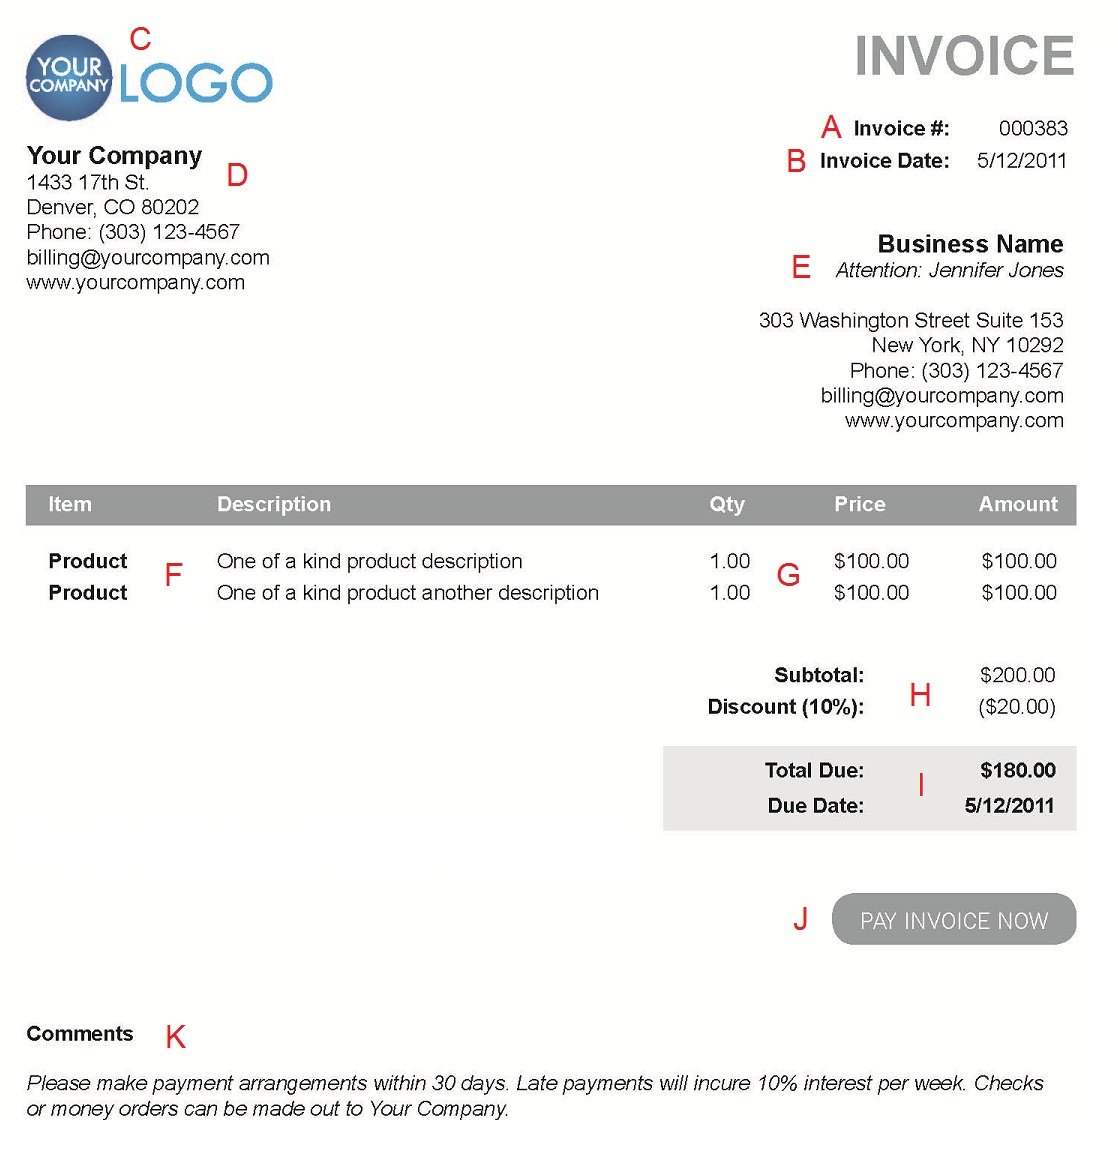 Coolmathgamesus  Terrific The  Different Sections Of An Electronic Payment Invoice With Fair A  With Archaic Invoice Word Document Also Subcontractor Invoice Template In Addition Billing Invoice Sample And Jeep Grand Cherokee Invoice Price As Well As Automotive Invoicing Software Additionally Vendor Invoice Template From Paysimplecom With Coolmathgamesus  Fair The  Different Sections Of An Electronic Payment Invoice With Archaic A  And Terrific Invoice Word Document Also Subcontractor Invoice Template In Addition Billing Invoice Sample From Paysimplecom